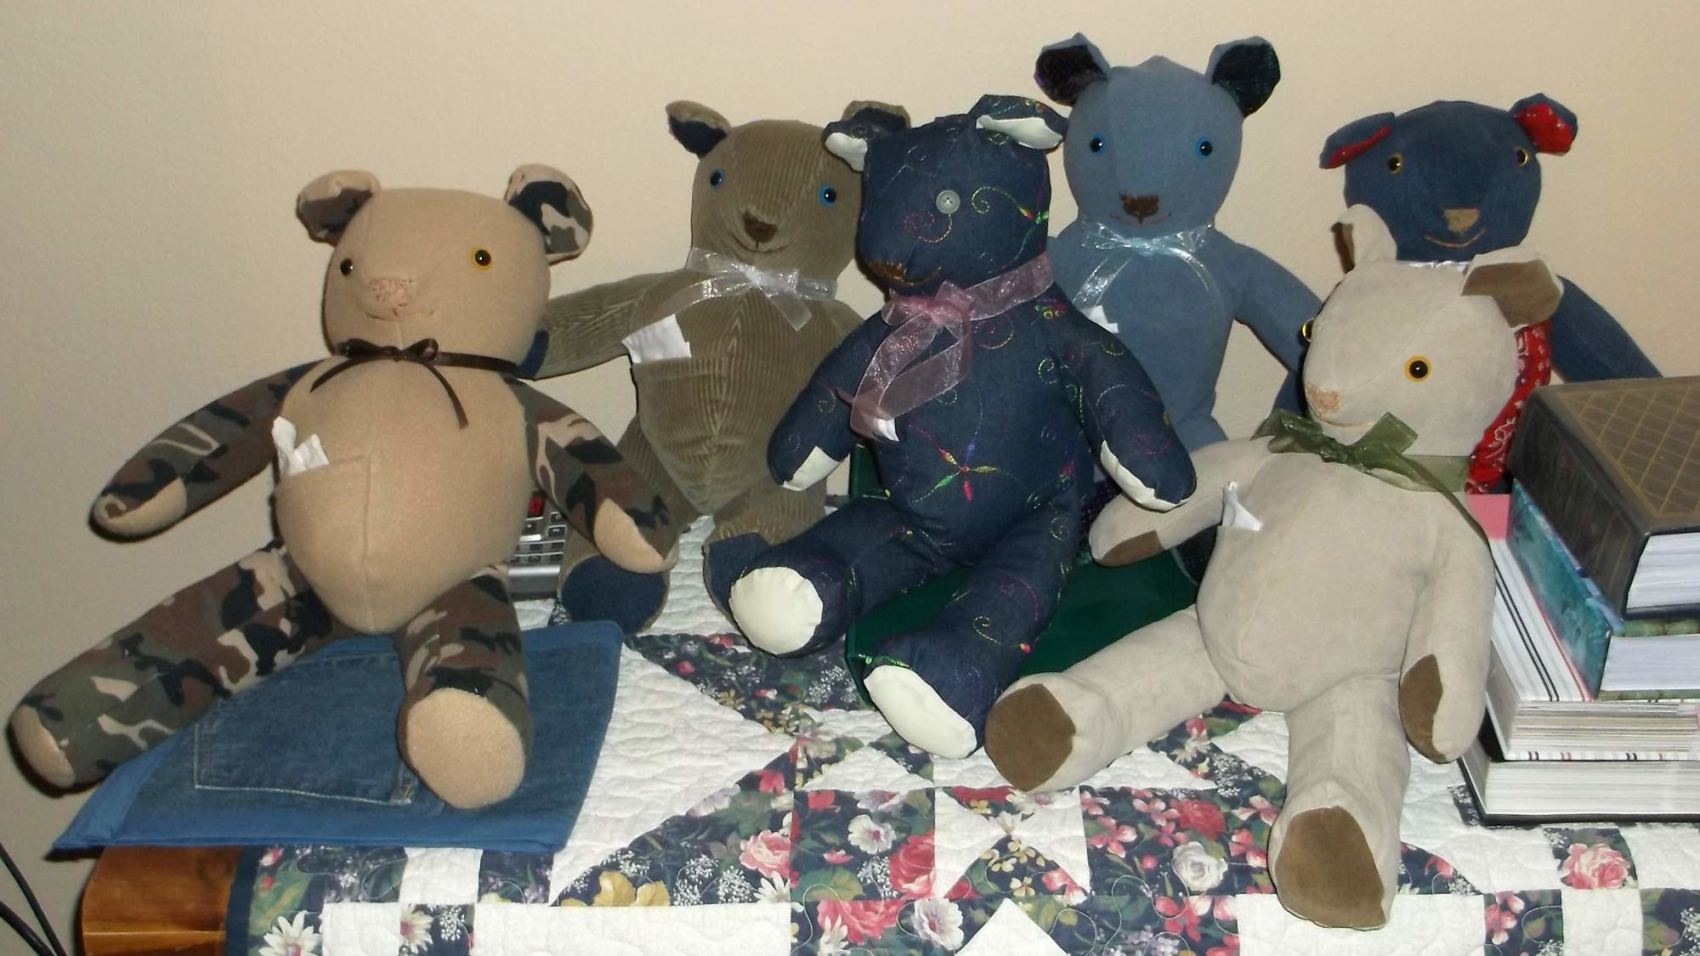 Resident Eleanor Ralls makes handmade teddy bears to children near and far.